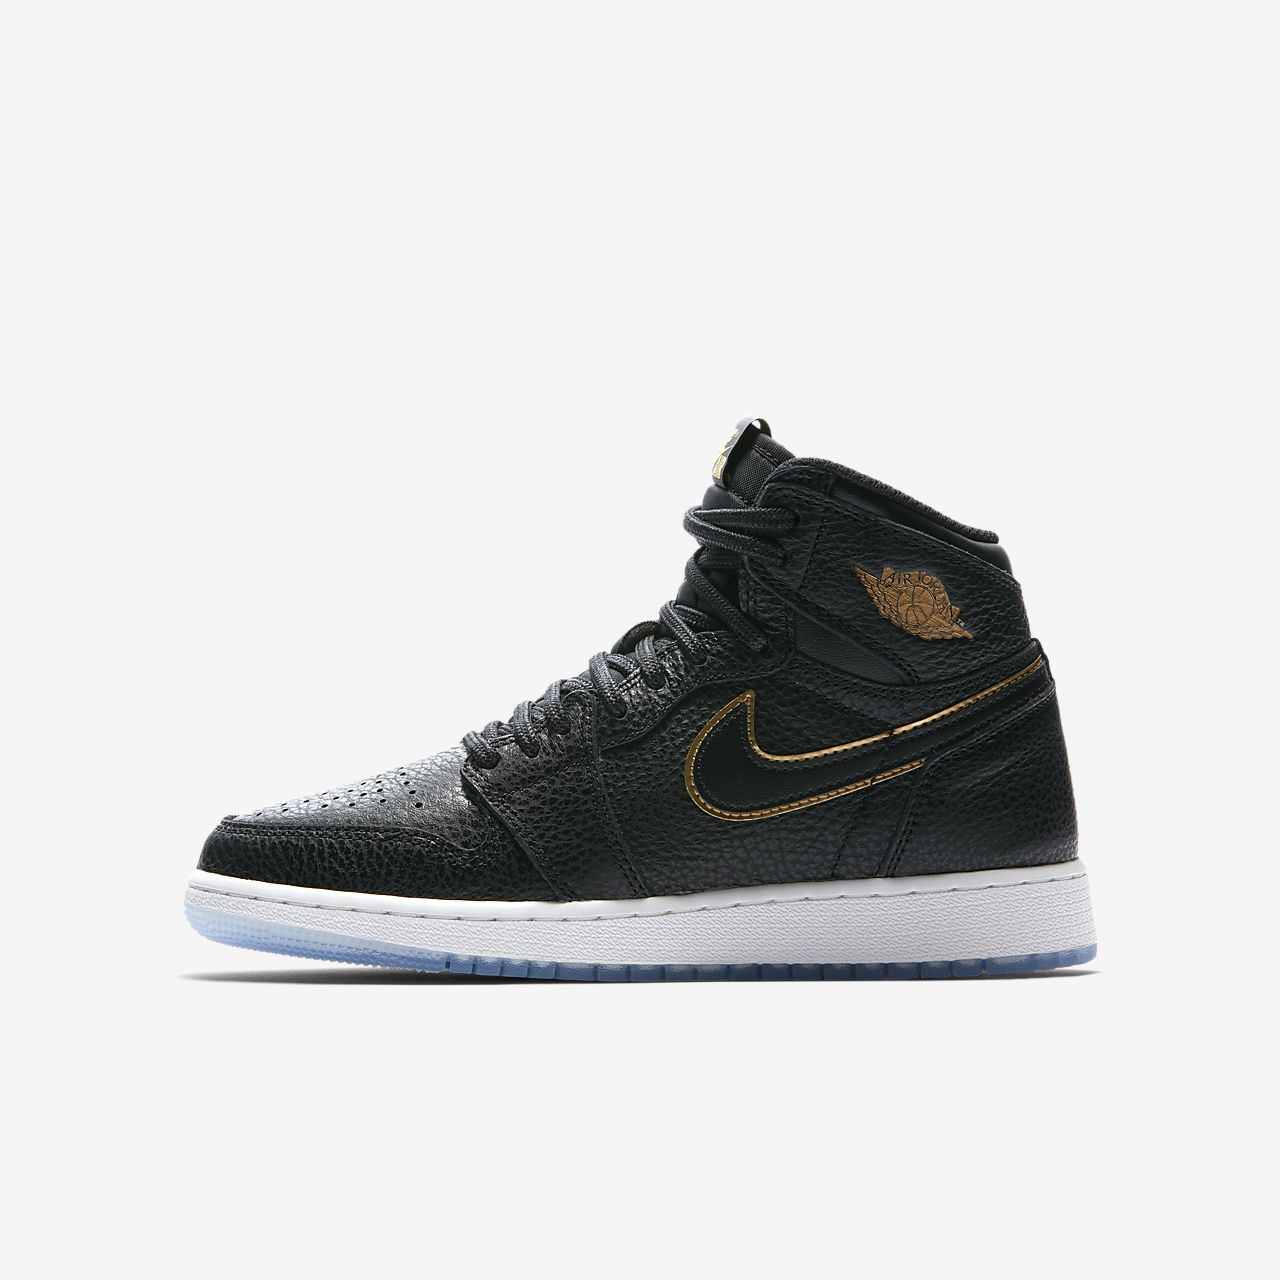 jordan retro 1 high og nz